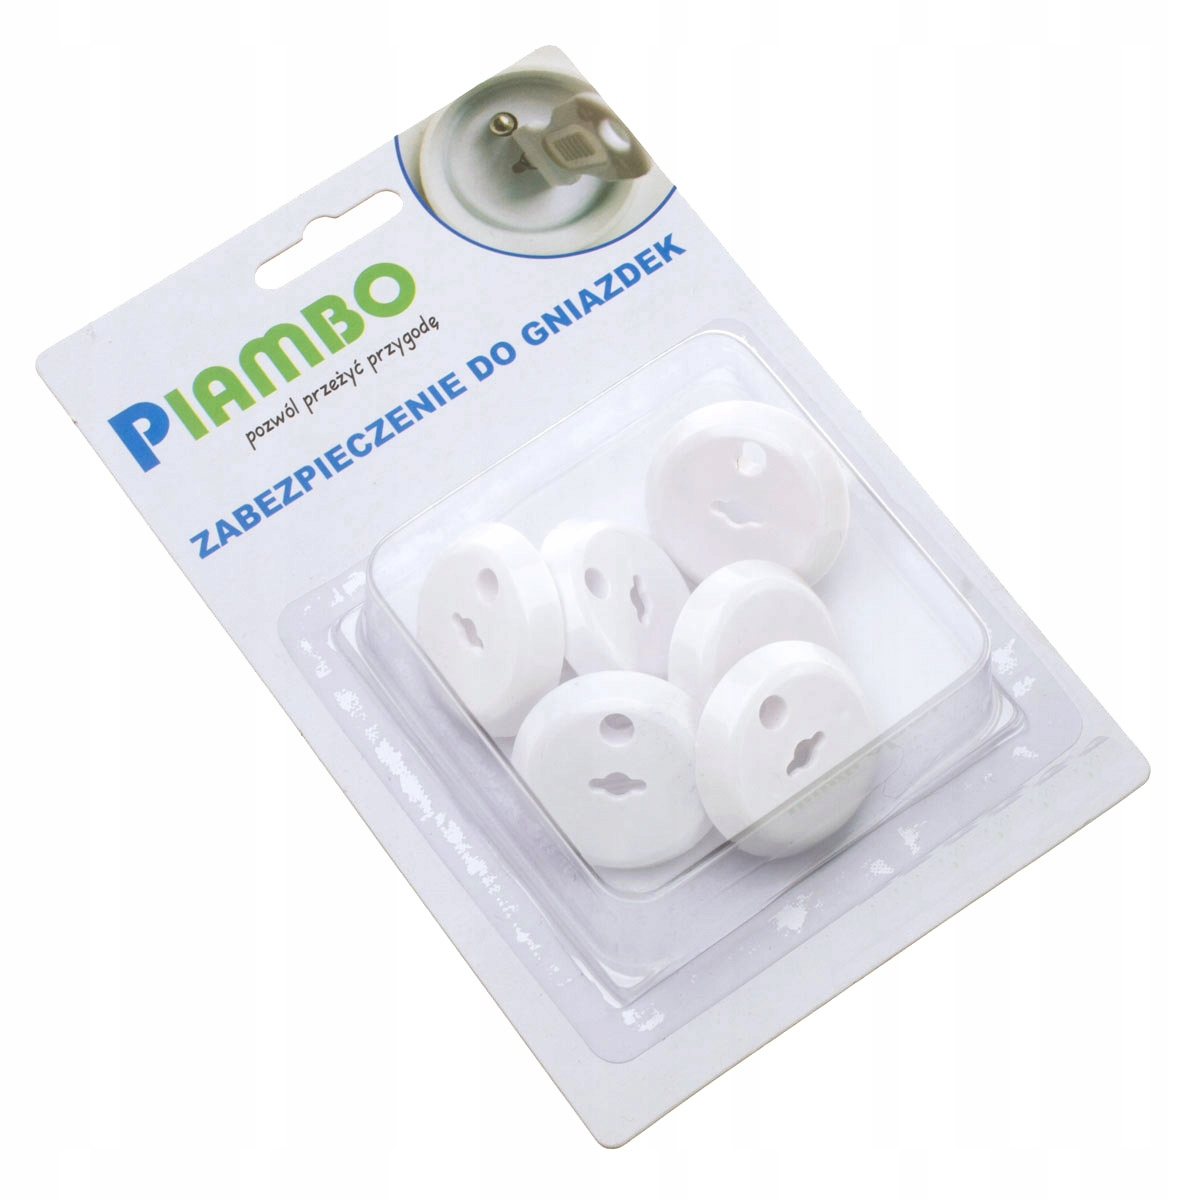 Item PROTECTION CONTACT SOCKETS WITH EARTHING 6 PCS.